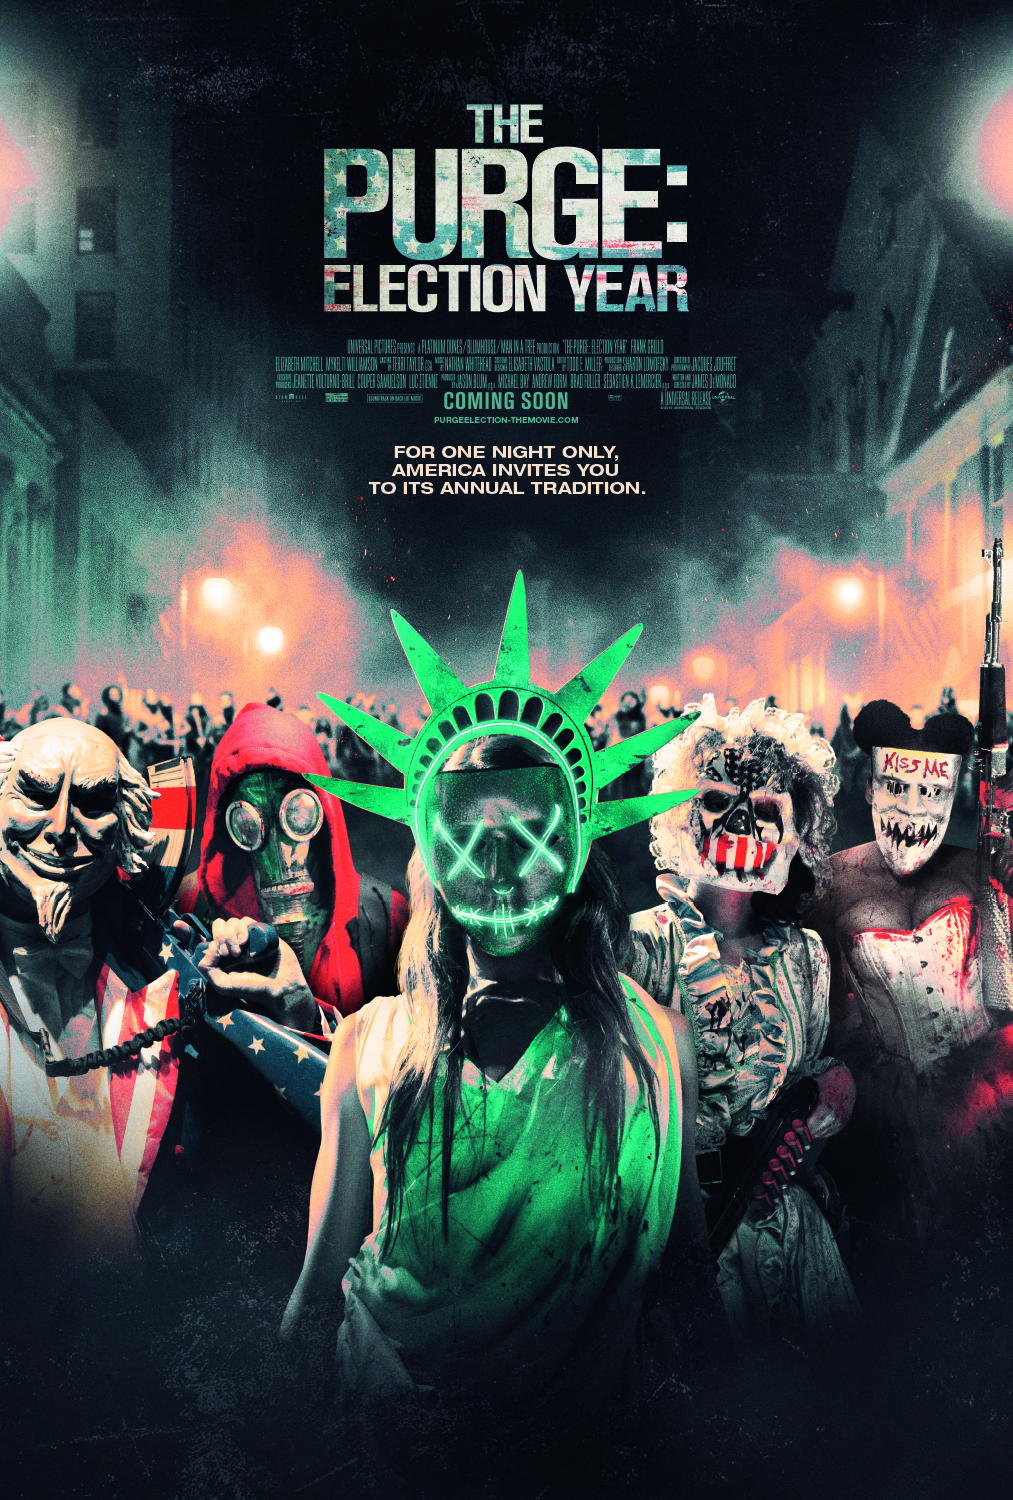 SCARS & STRIFE: 'The Purge Election Year' Agitprop, Change Agents & False  Left–Right Statecraft